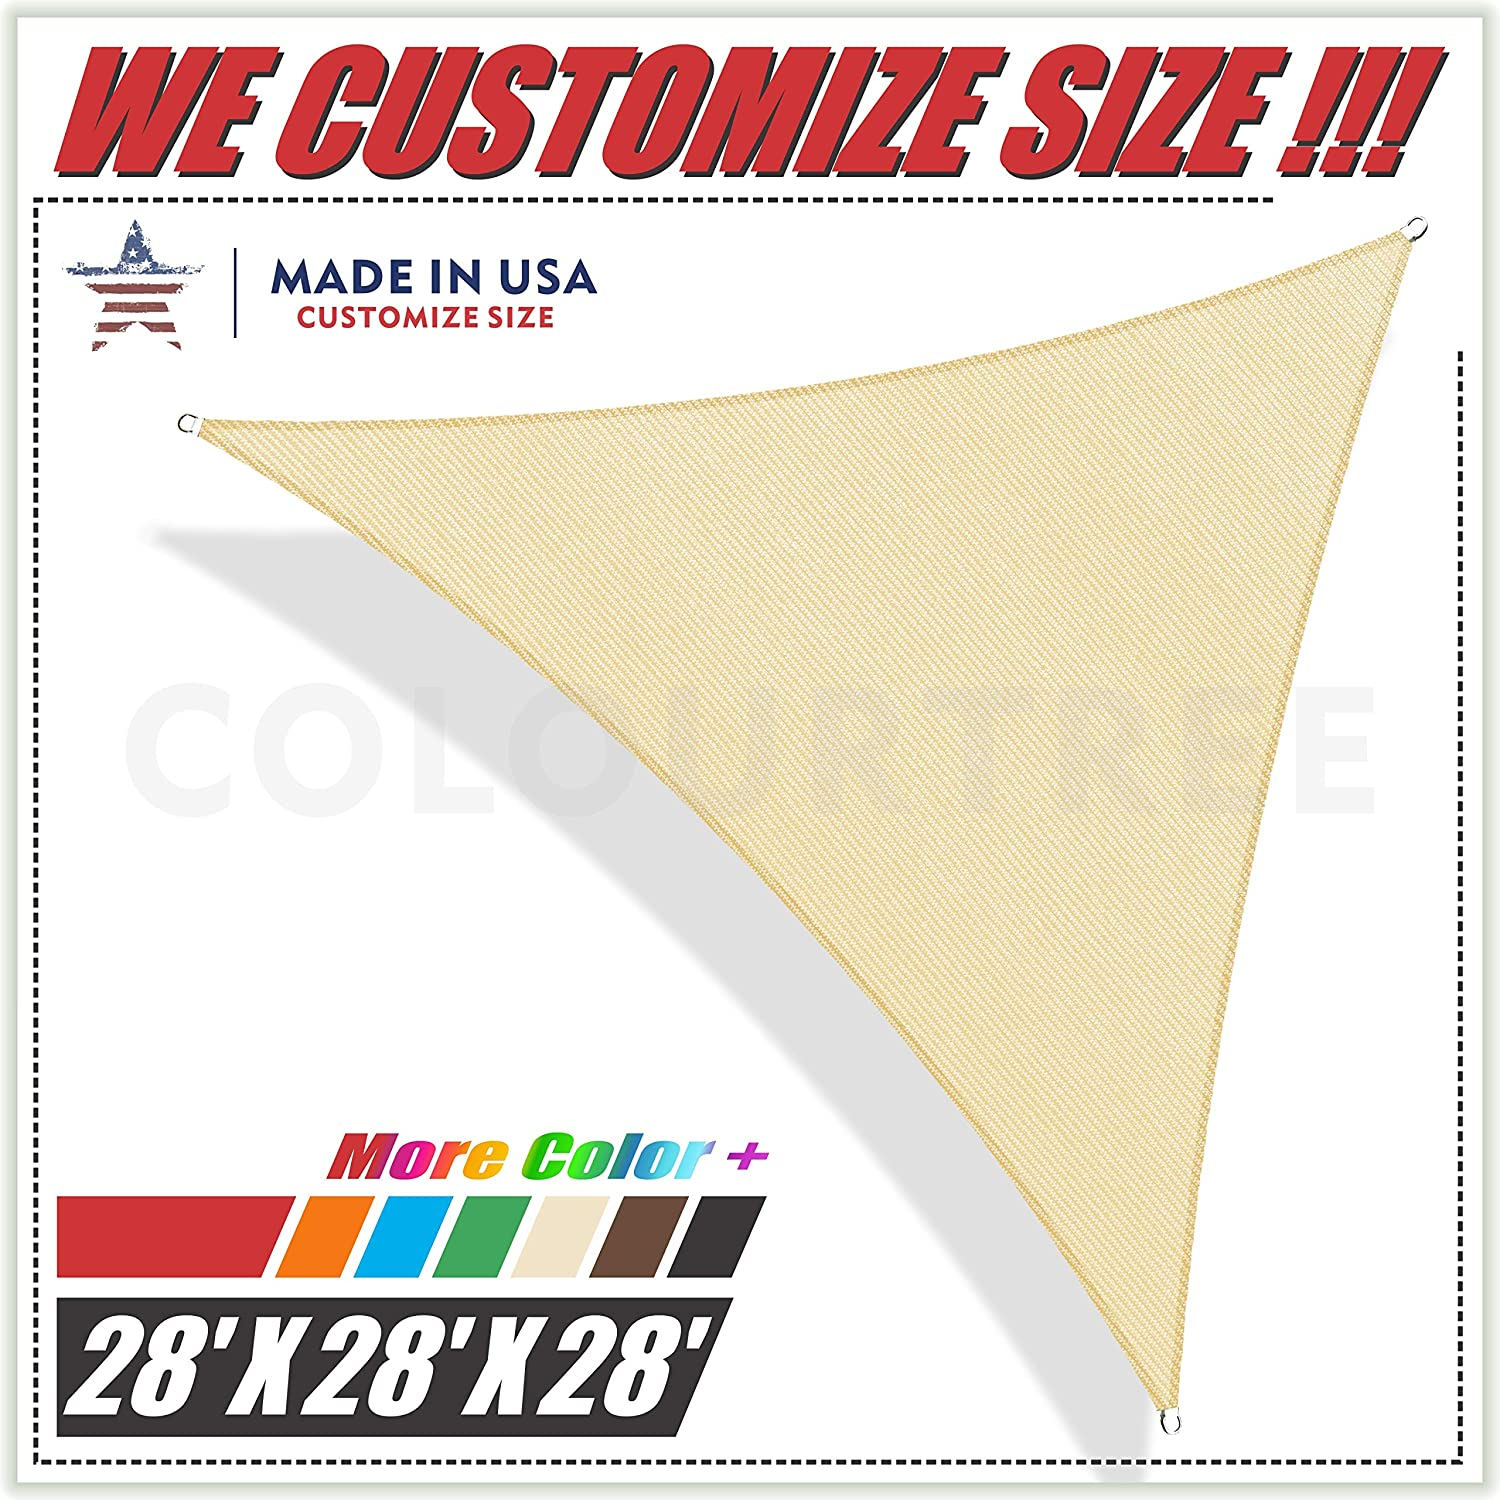 ColourTree 28 x 28 x 28 Beige Sun Shade Sail Triangle Canopy Awning Shelter Fabric Cloth Screen – UV Block UV Resistant Heavy Duty Commercial Grade – Outdoor Patio Carport – We Make Custom Size